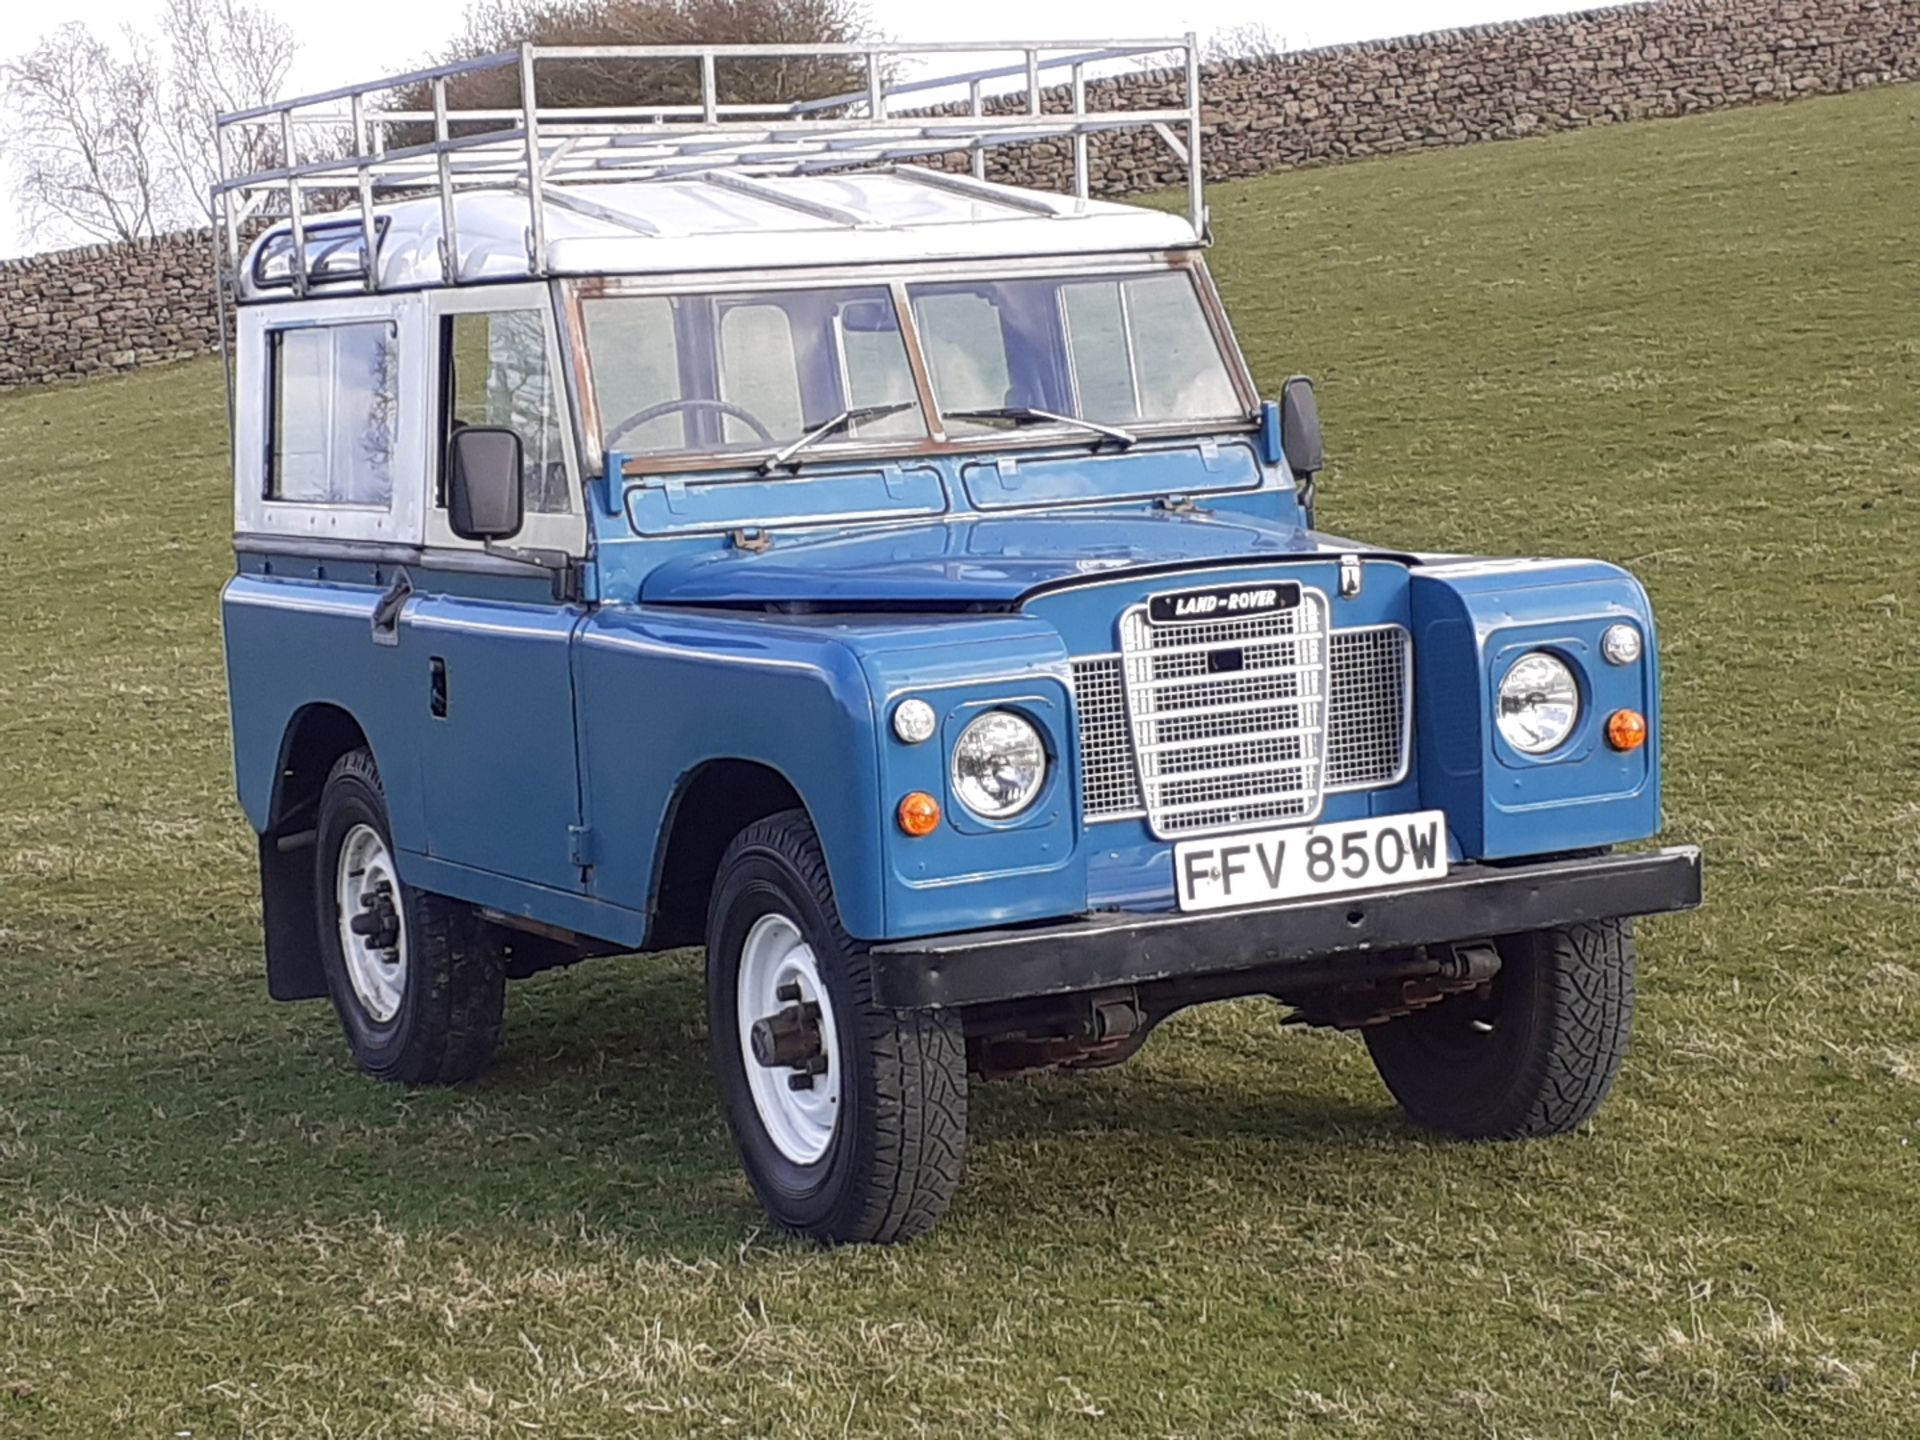 1980 LAND ROVER SERIES III CLASSIC STATION WAGON, TAX AND MOT EXEMPT *NO VAT* - Image 12 of 22